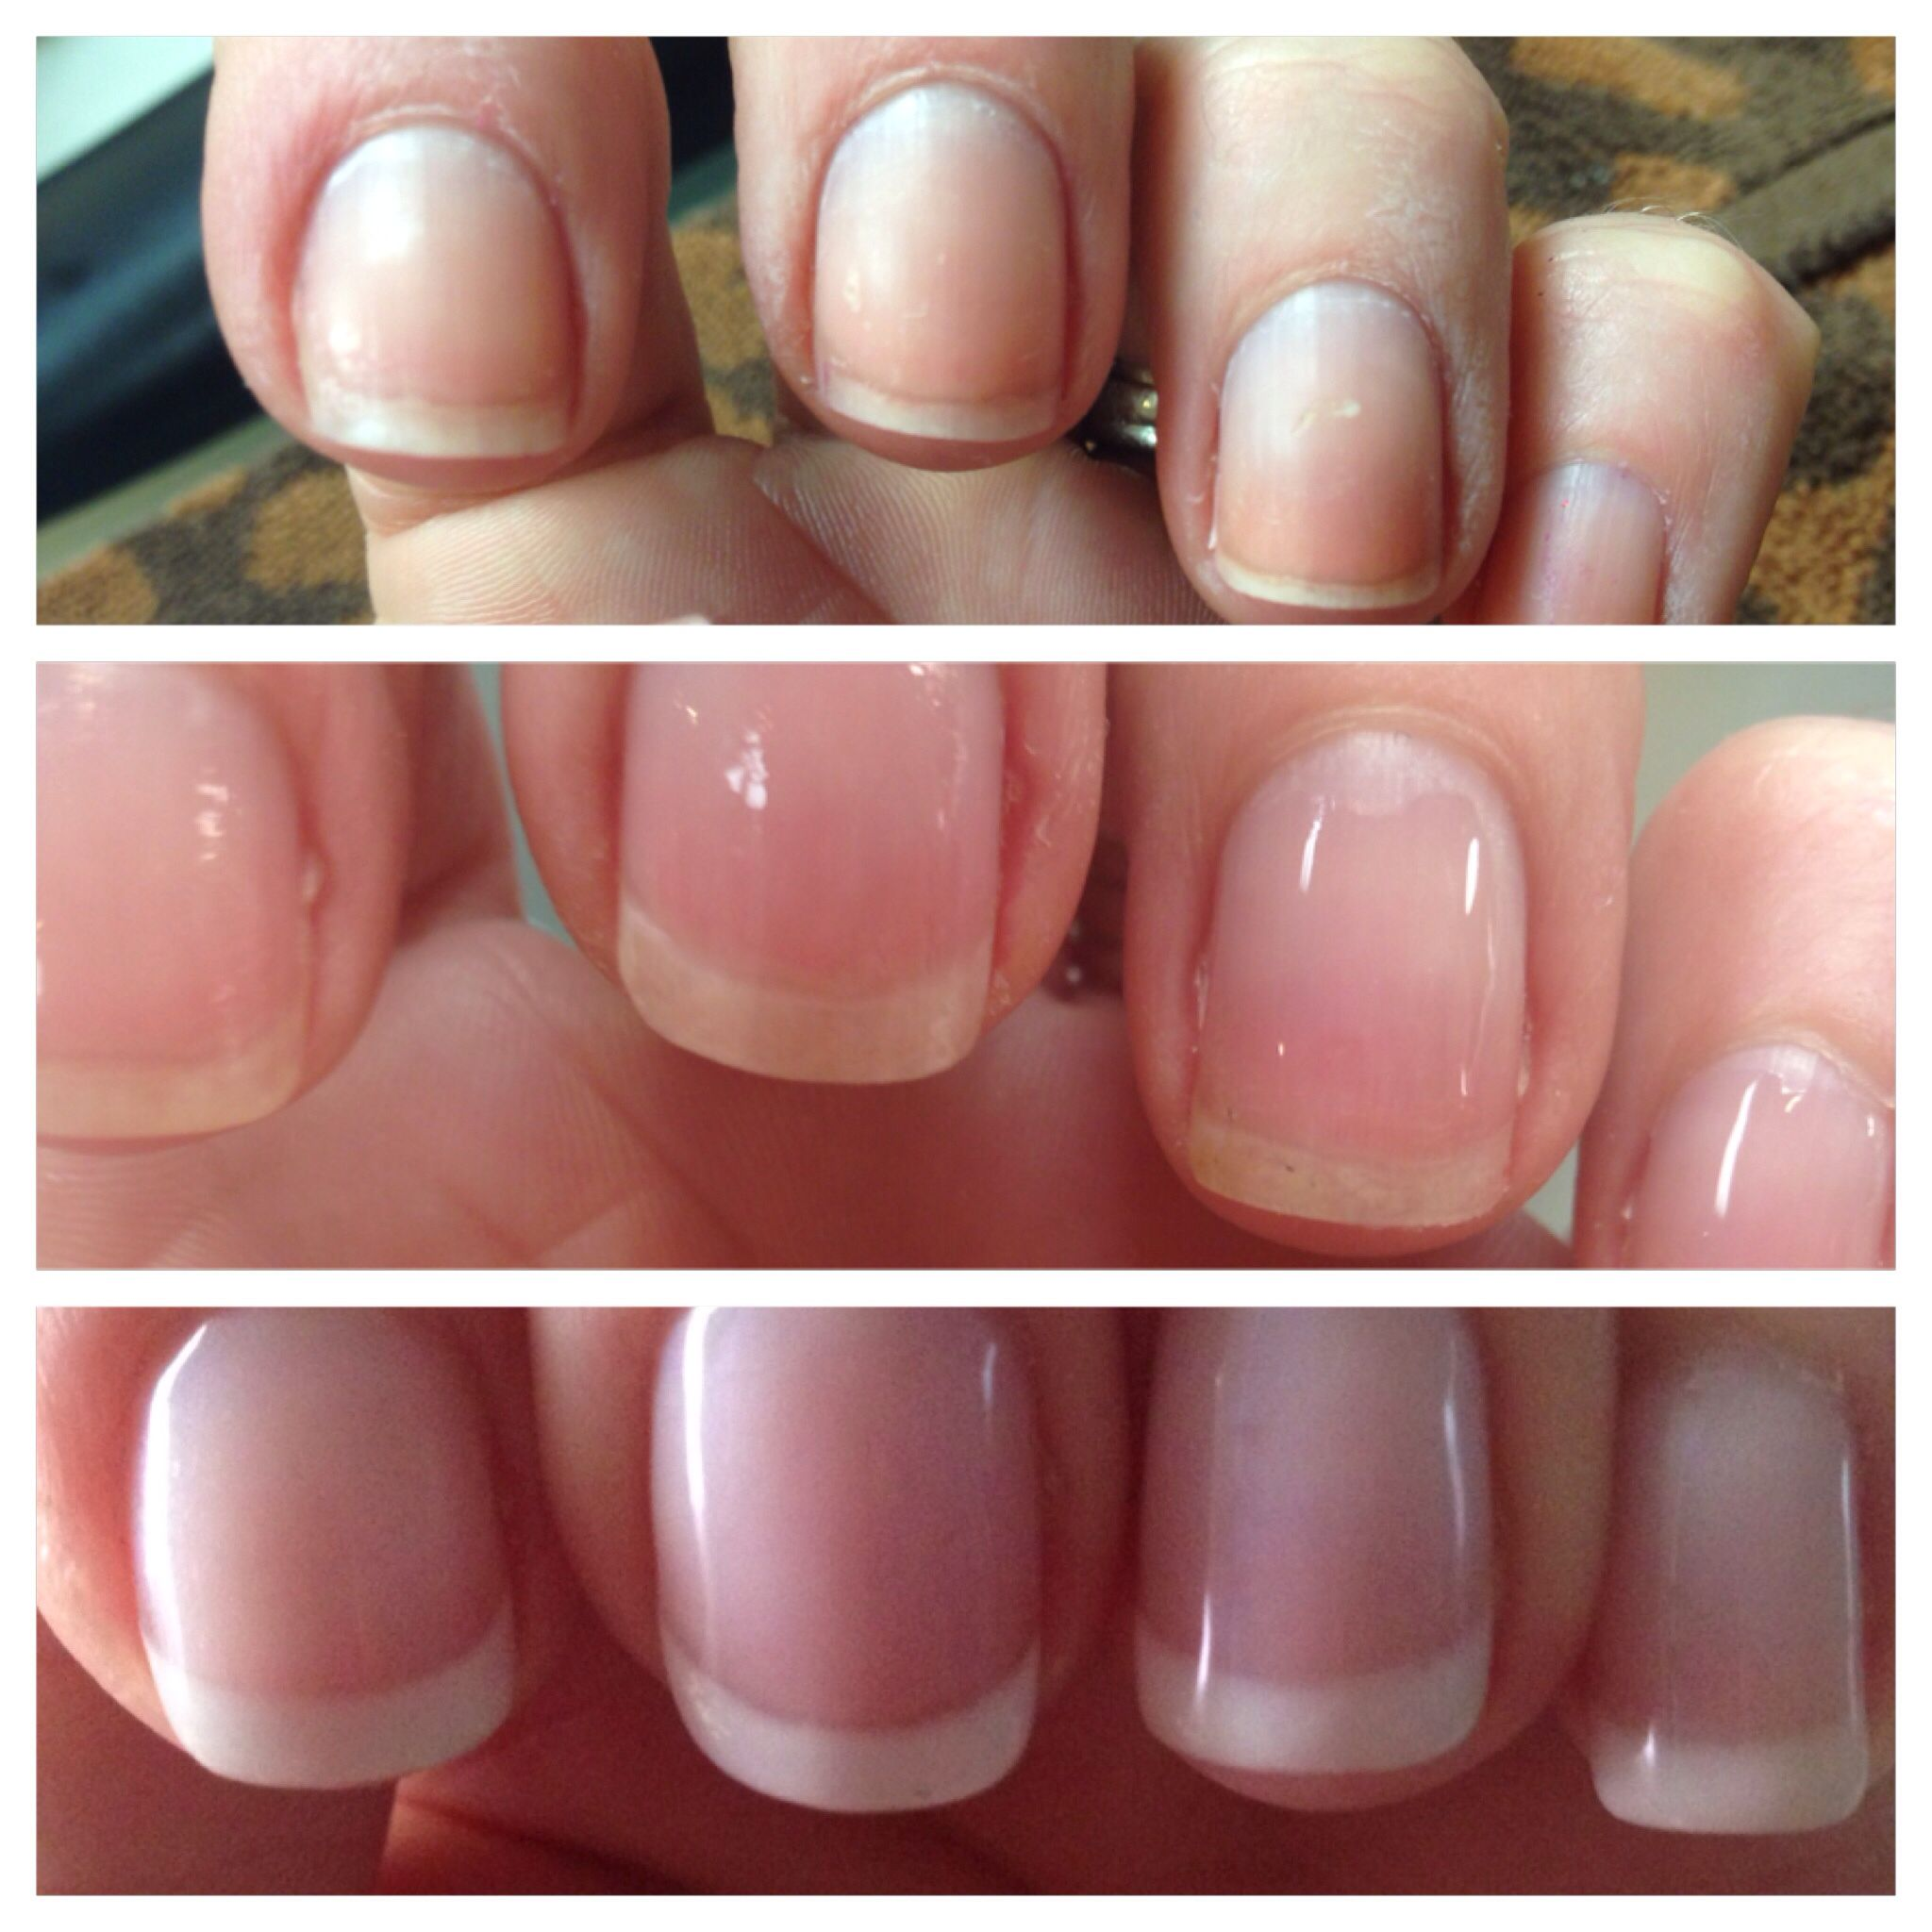 IBX nail system success | My nails! | Pinterest | Success, Nail ...